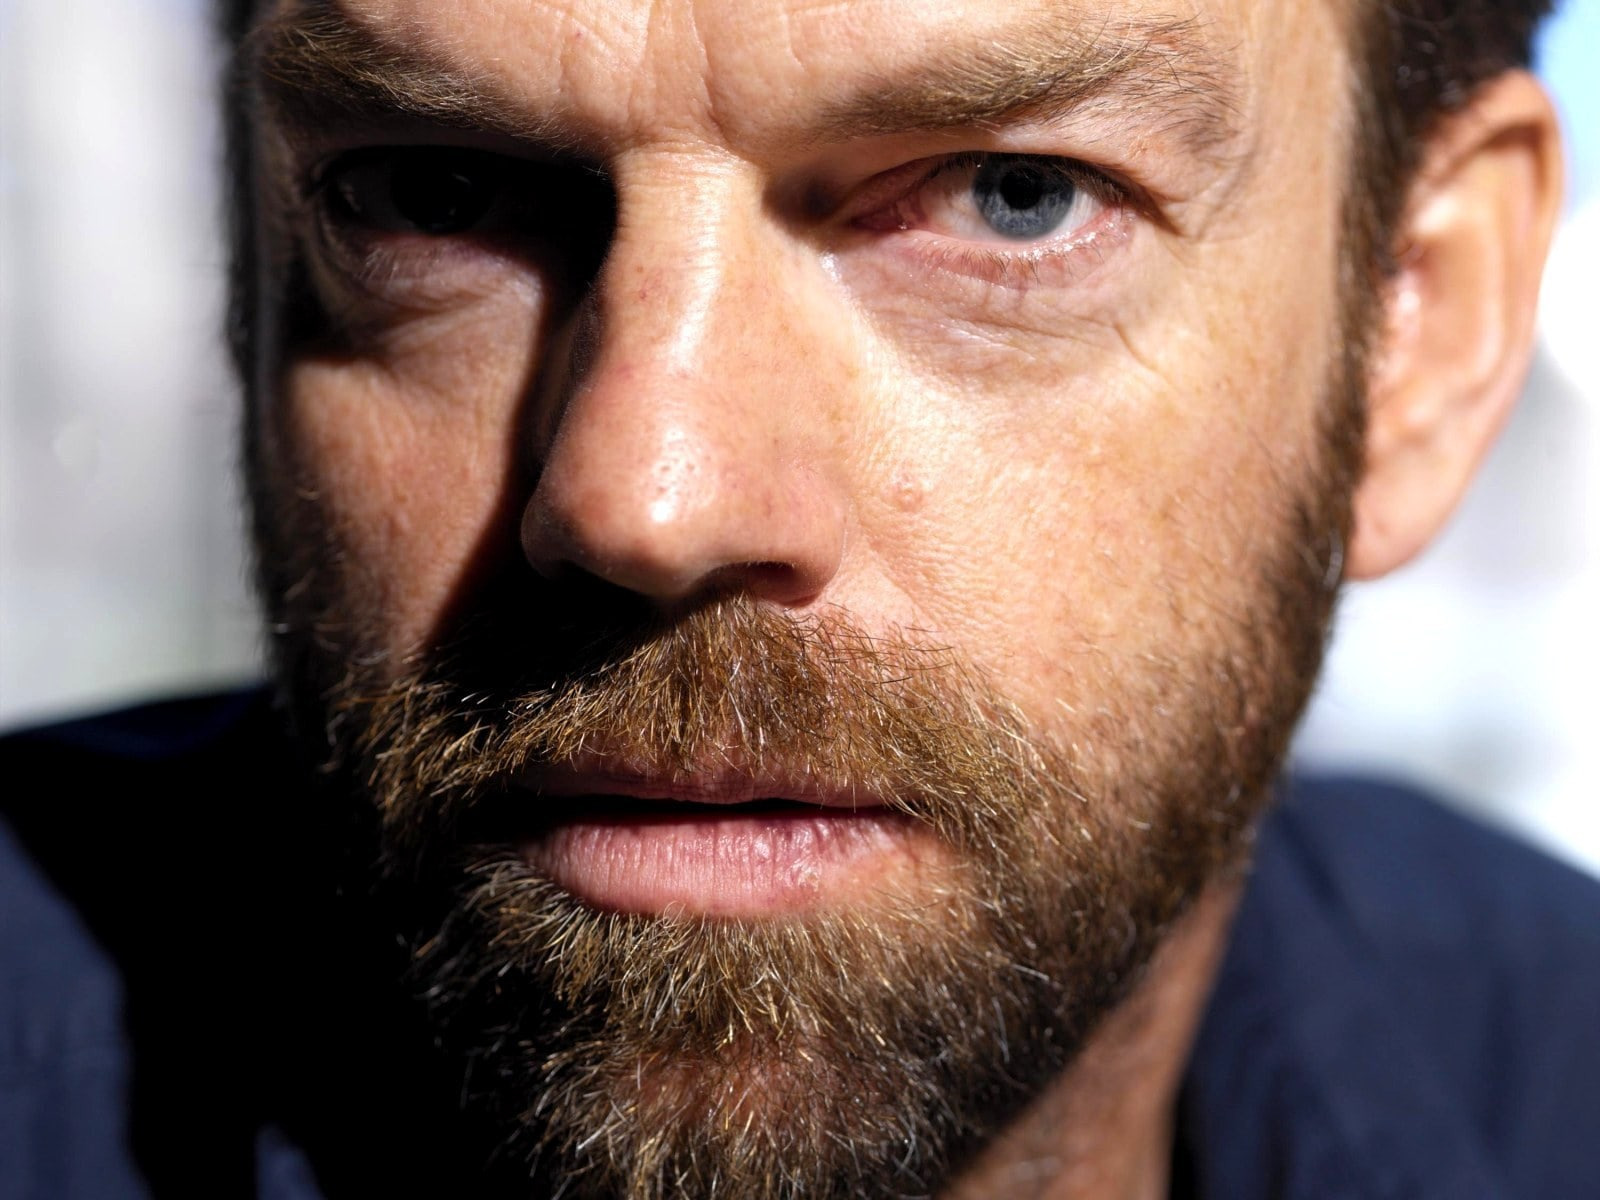 Hugo Weaving HQ wallpapers